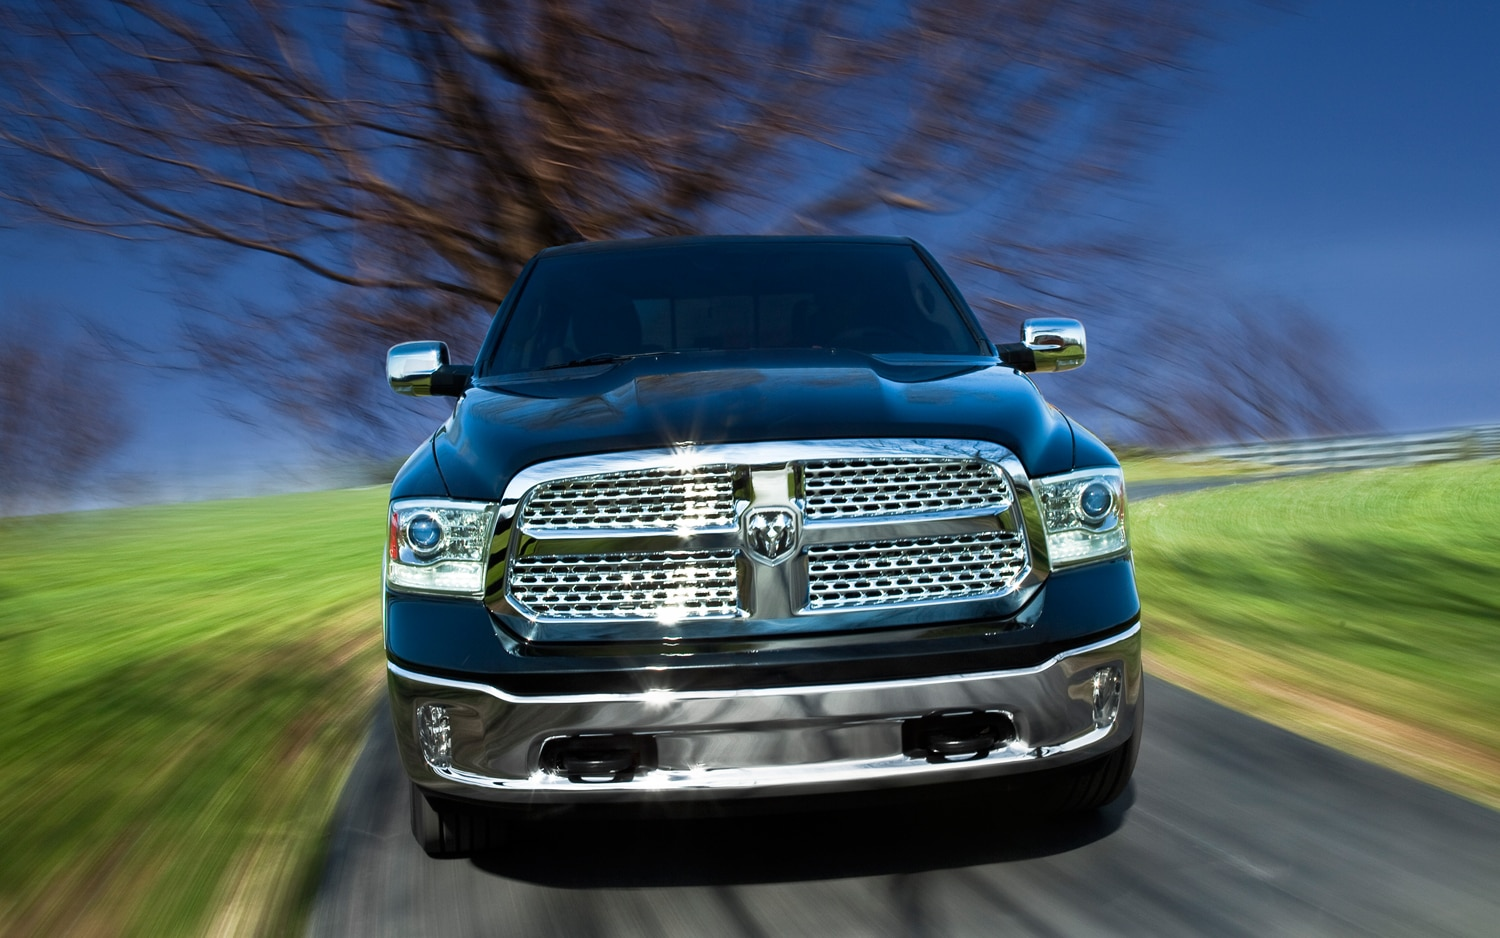 2013 Ram 1500 Front Profile In Motion